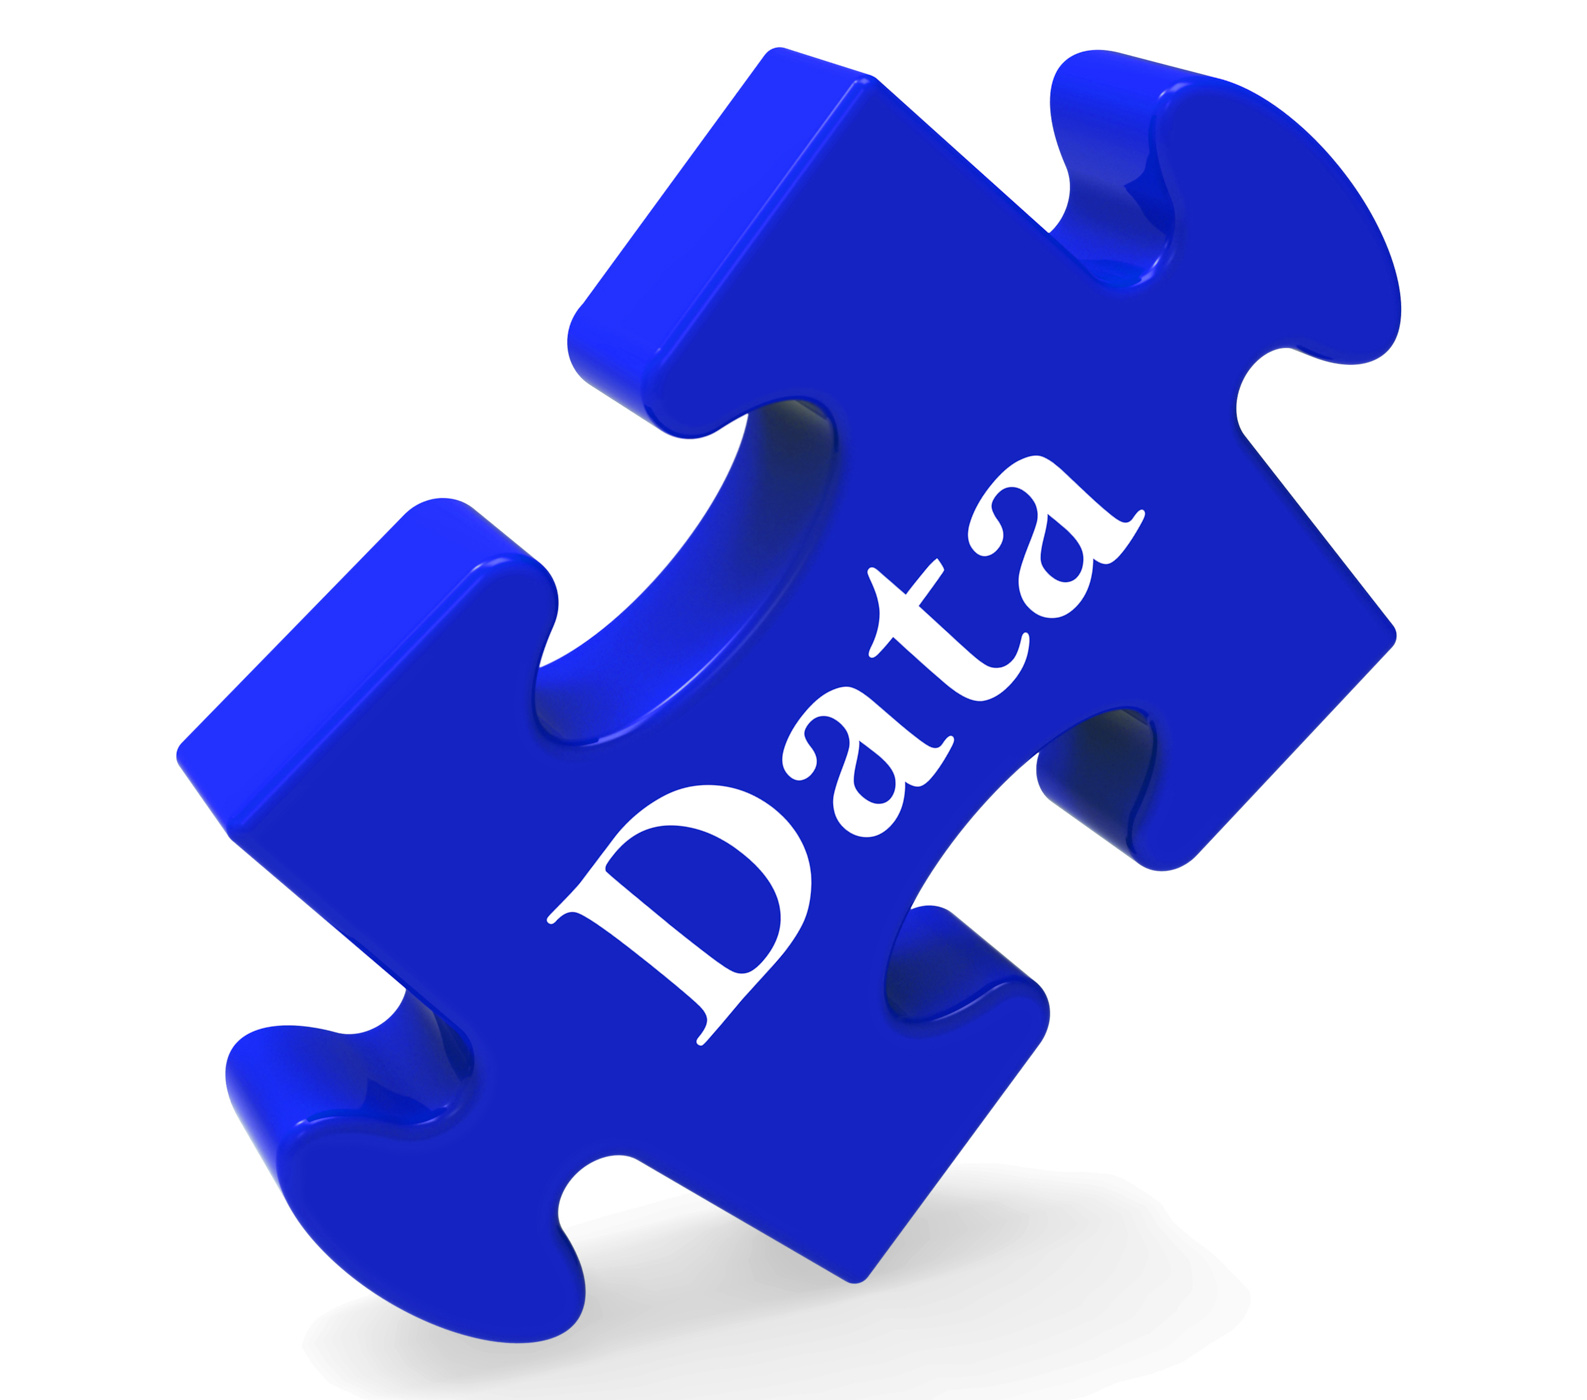 Data Puzzle Shows Digital Info Computing And Archive, Archive, Byte, Computing, Data, HQ Photo